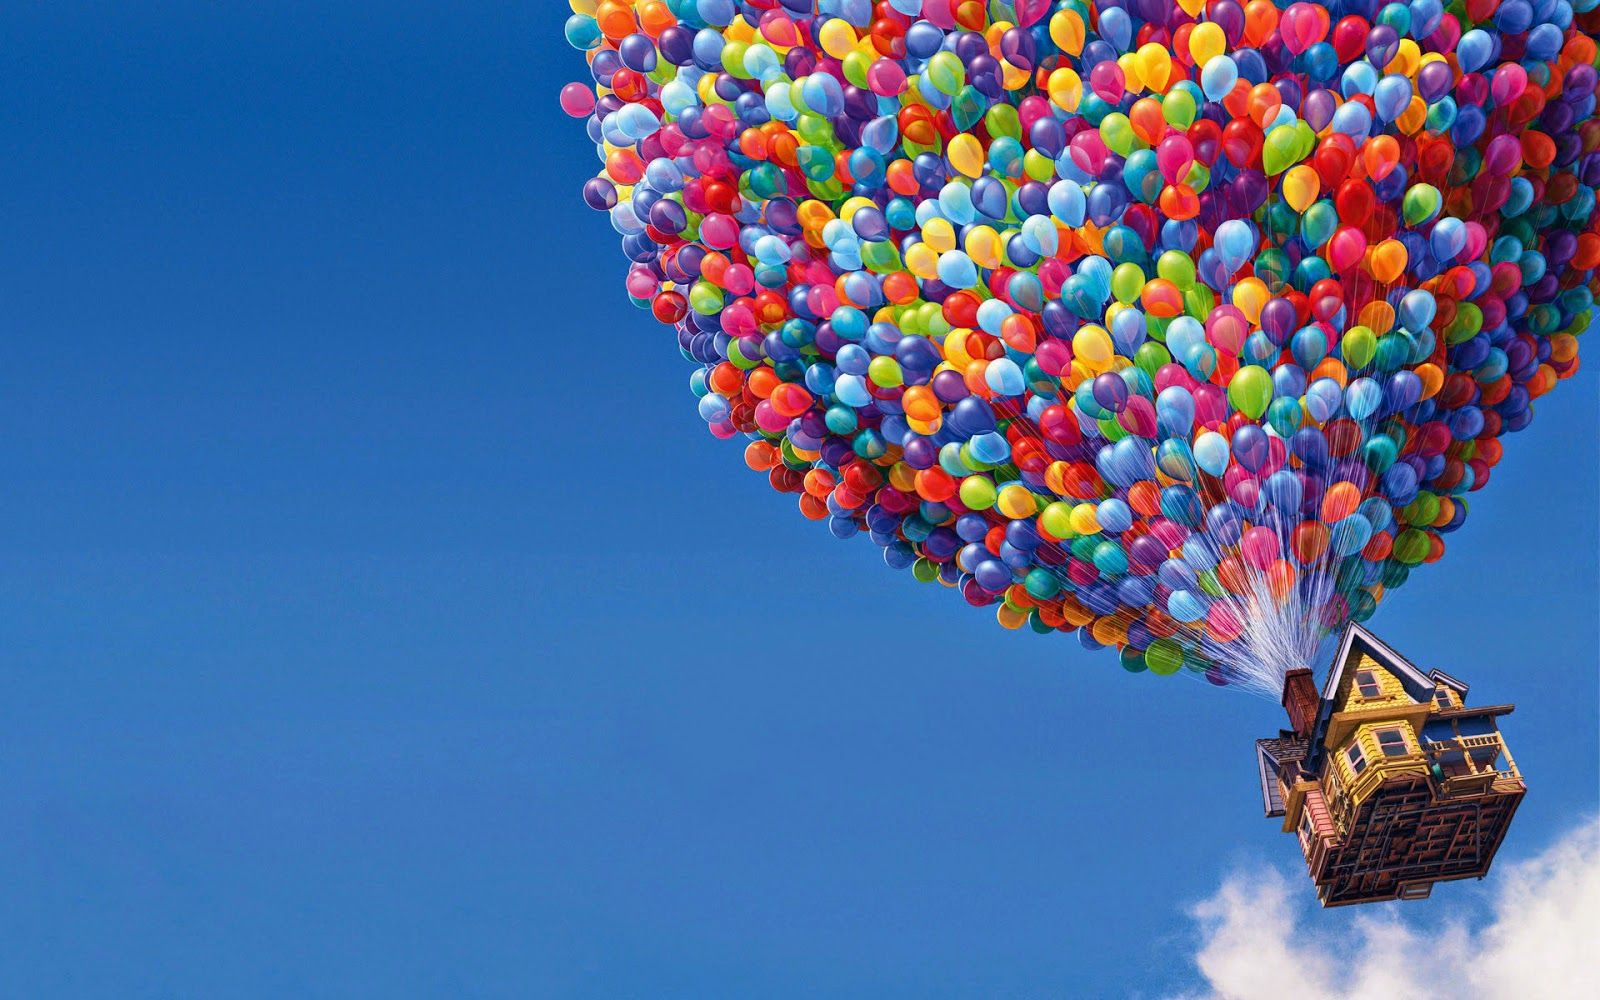 1600x1000 6 Balloons HD Wallpapers - ABC HD-WALLPAPERS